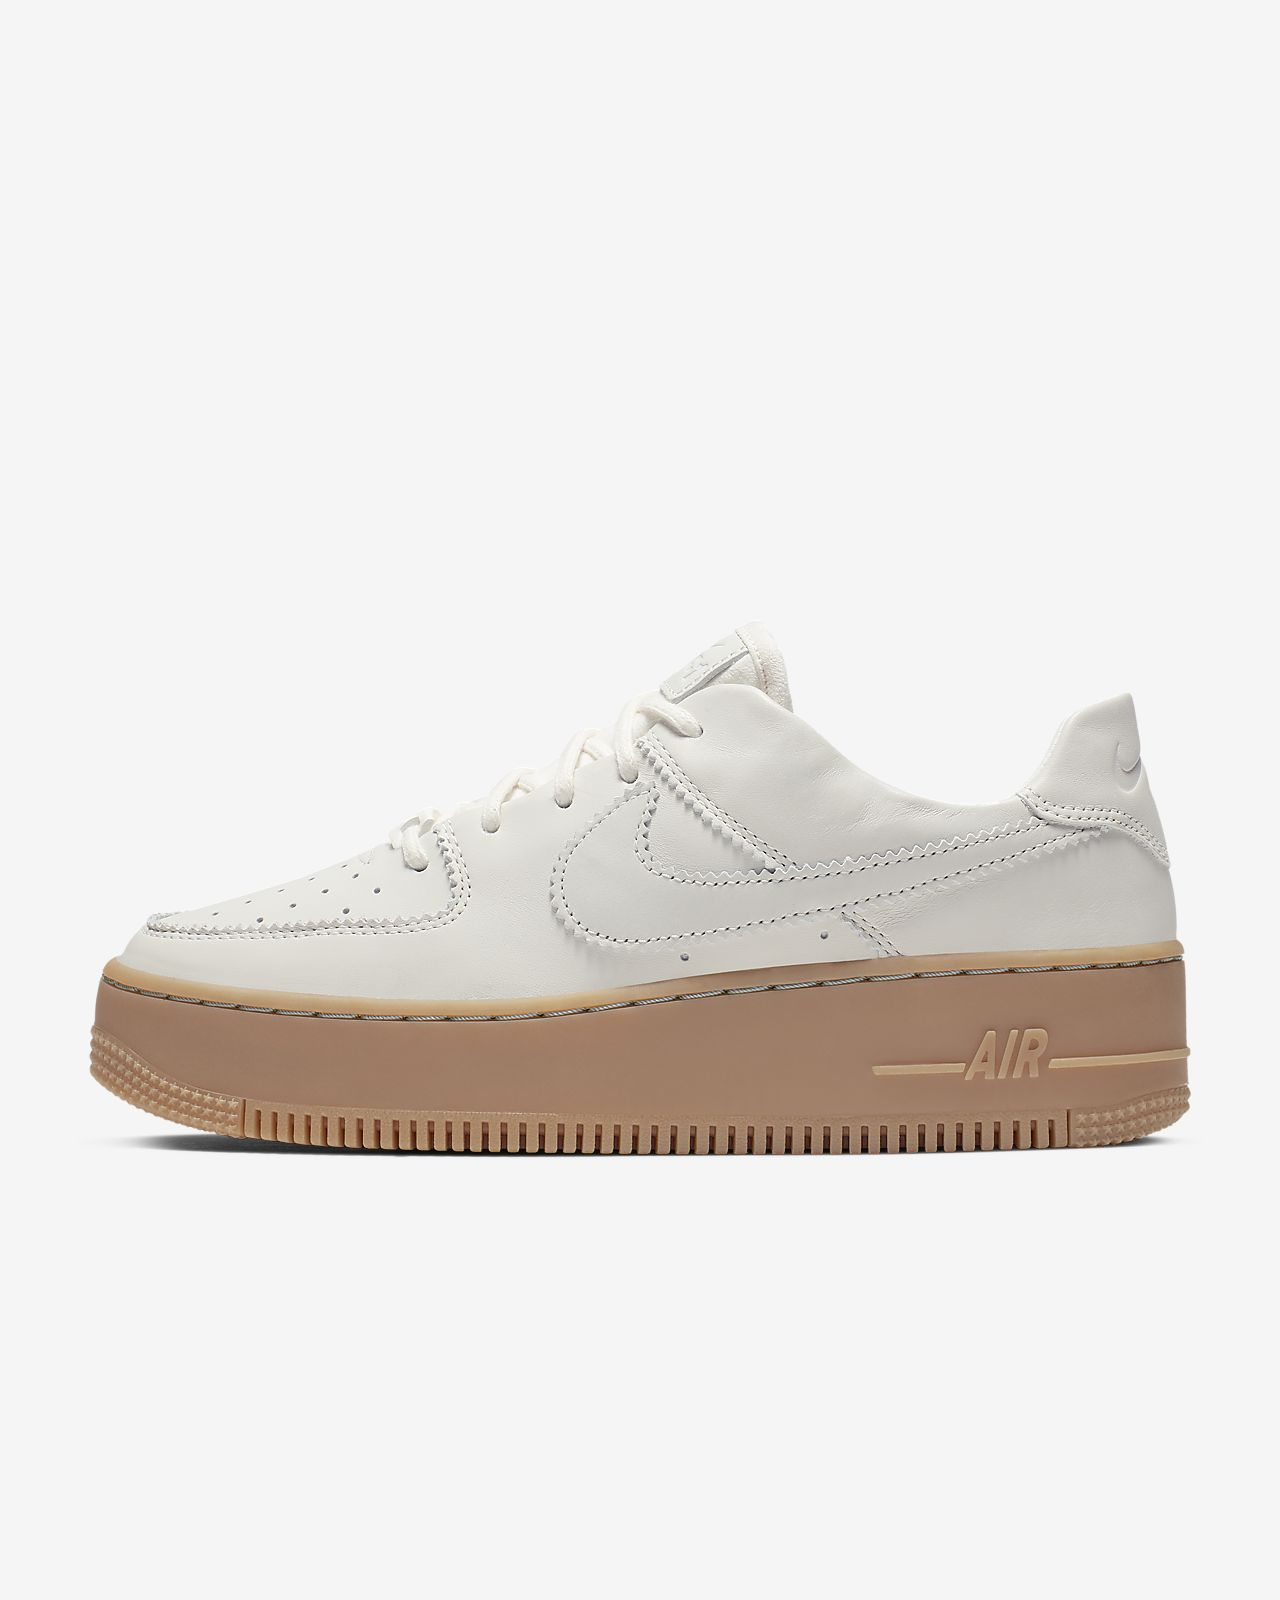 promo code 93cde d87be Nike Air Force 1 Sage Low LX Zapatillas - Mujer